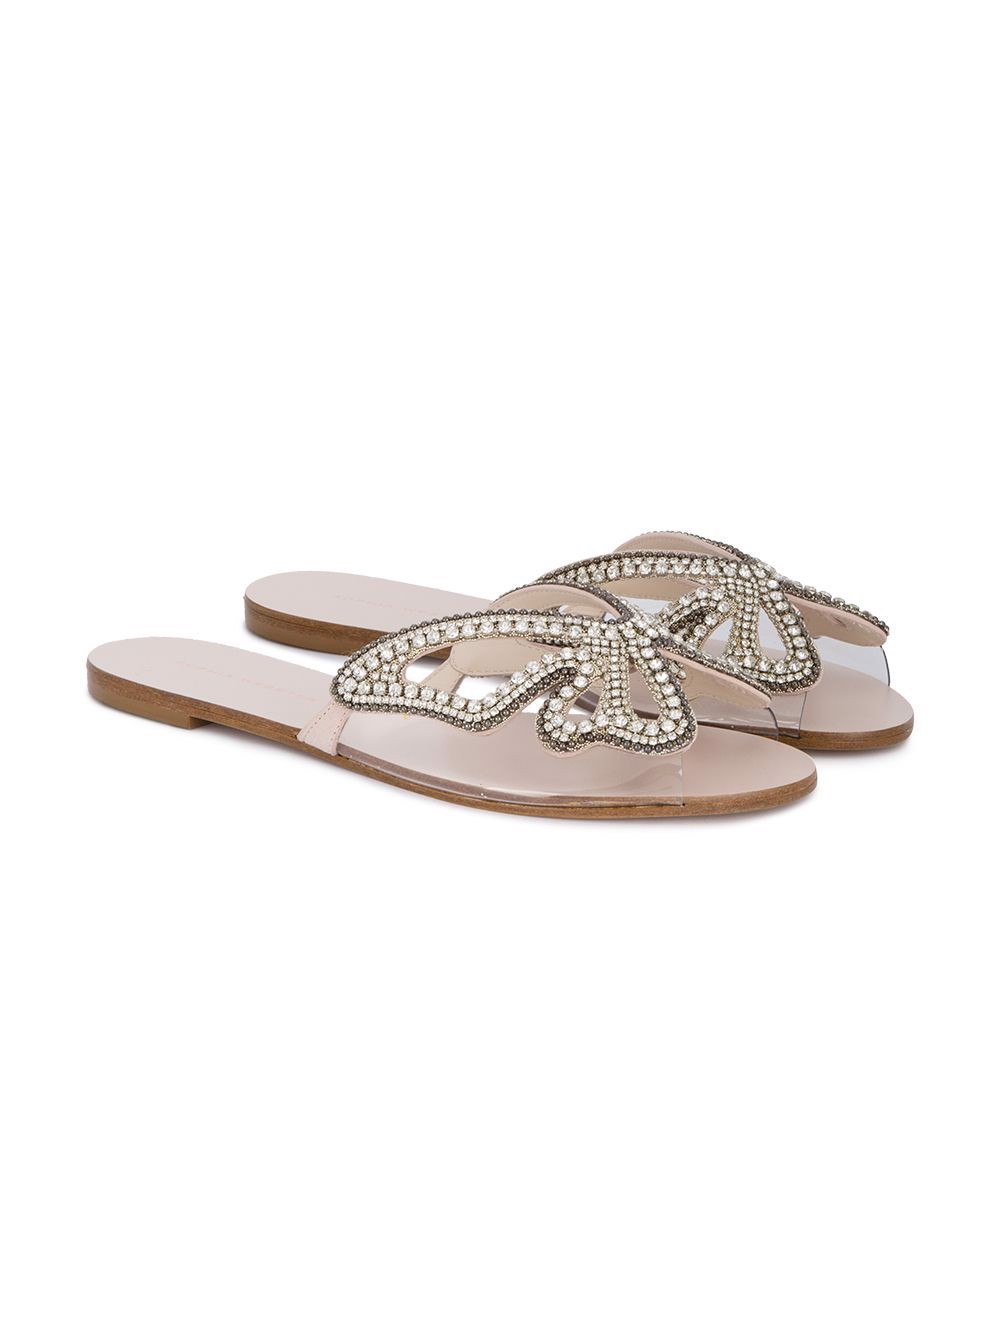 MADAME BUTTERFLY CRYSTAL SLIDE (SPF17035) - 5500